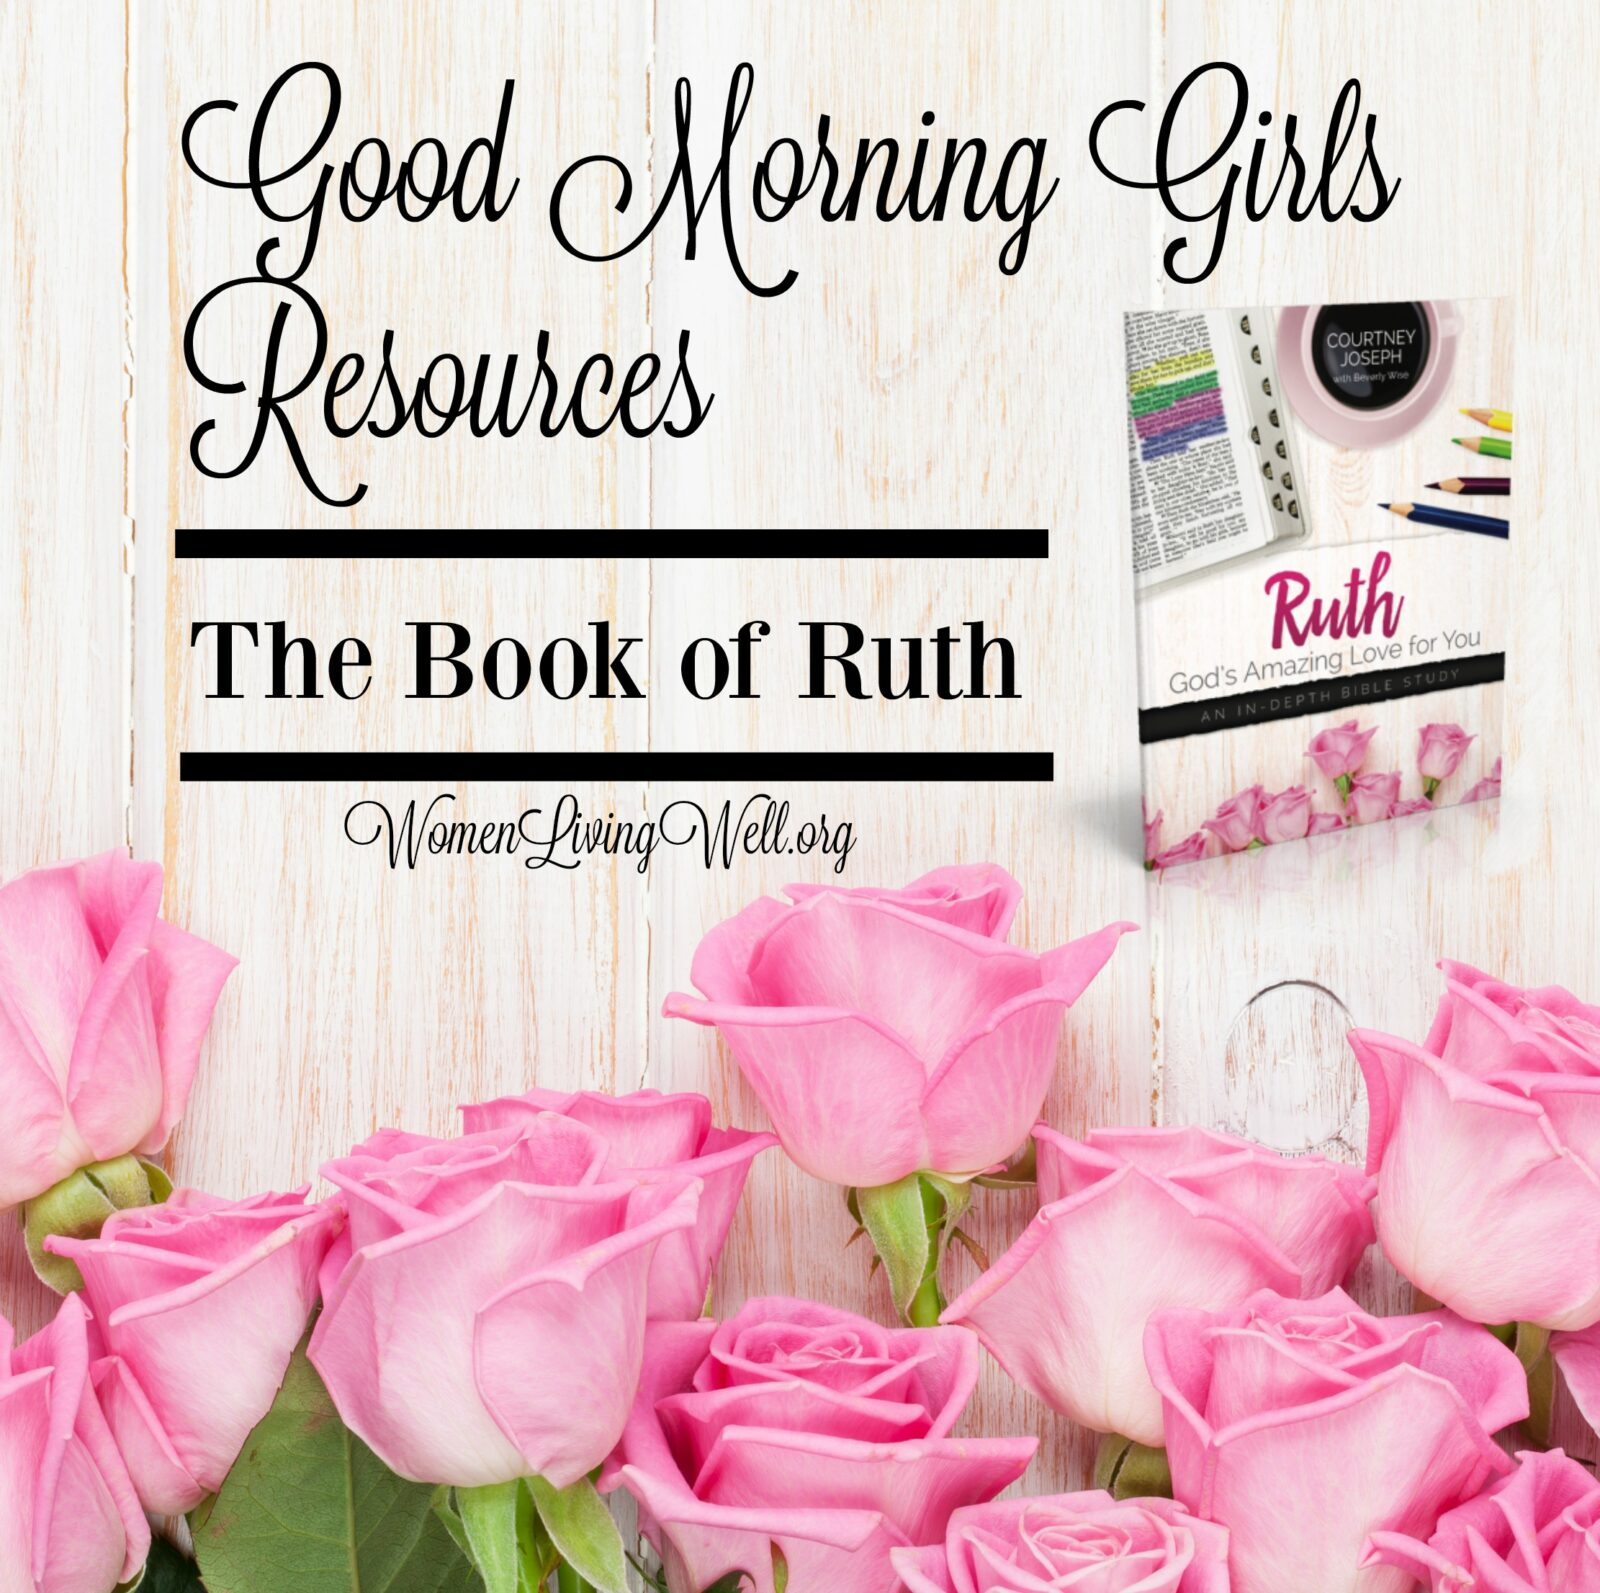 Good Morning Girls Resources for the Book of Ruth - Women Living Well